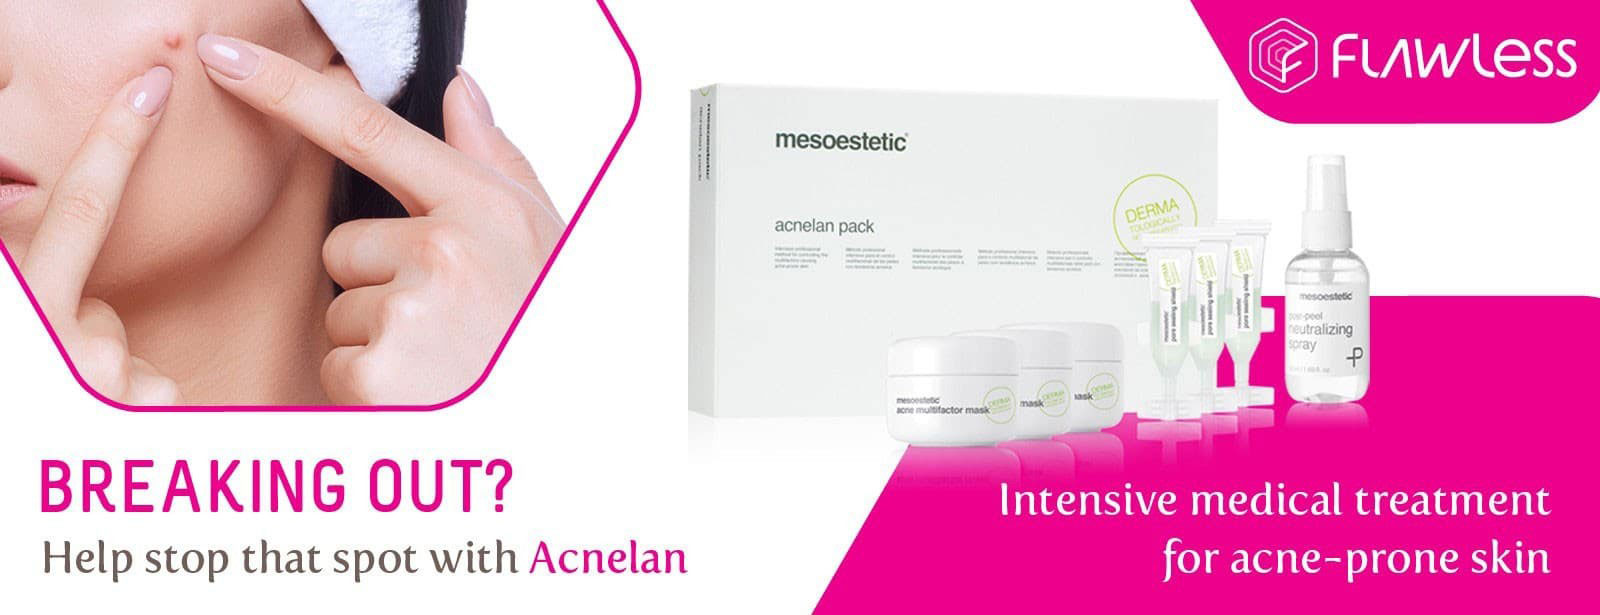 Acnelan Mesoestetic Break Out Pimples Intensive medical treatment flawless